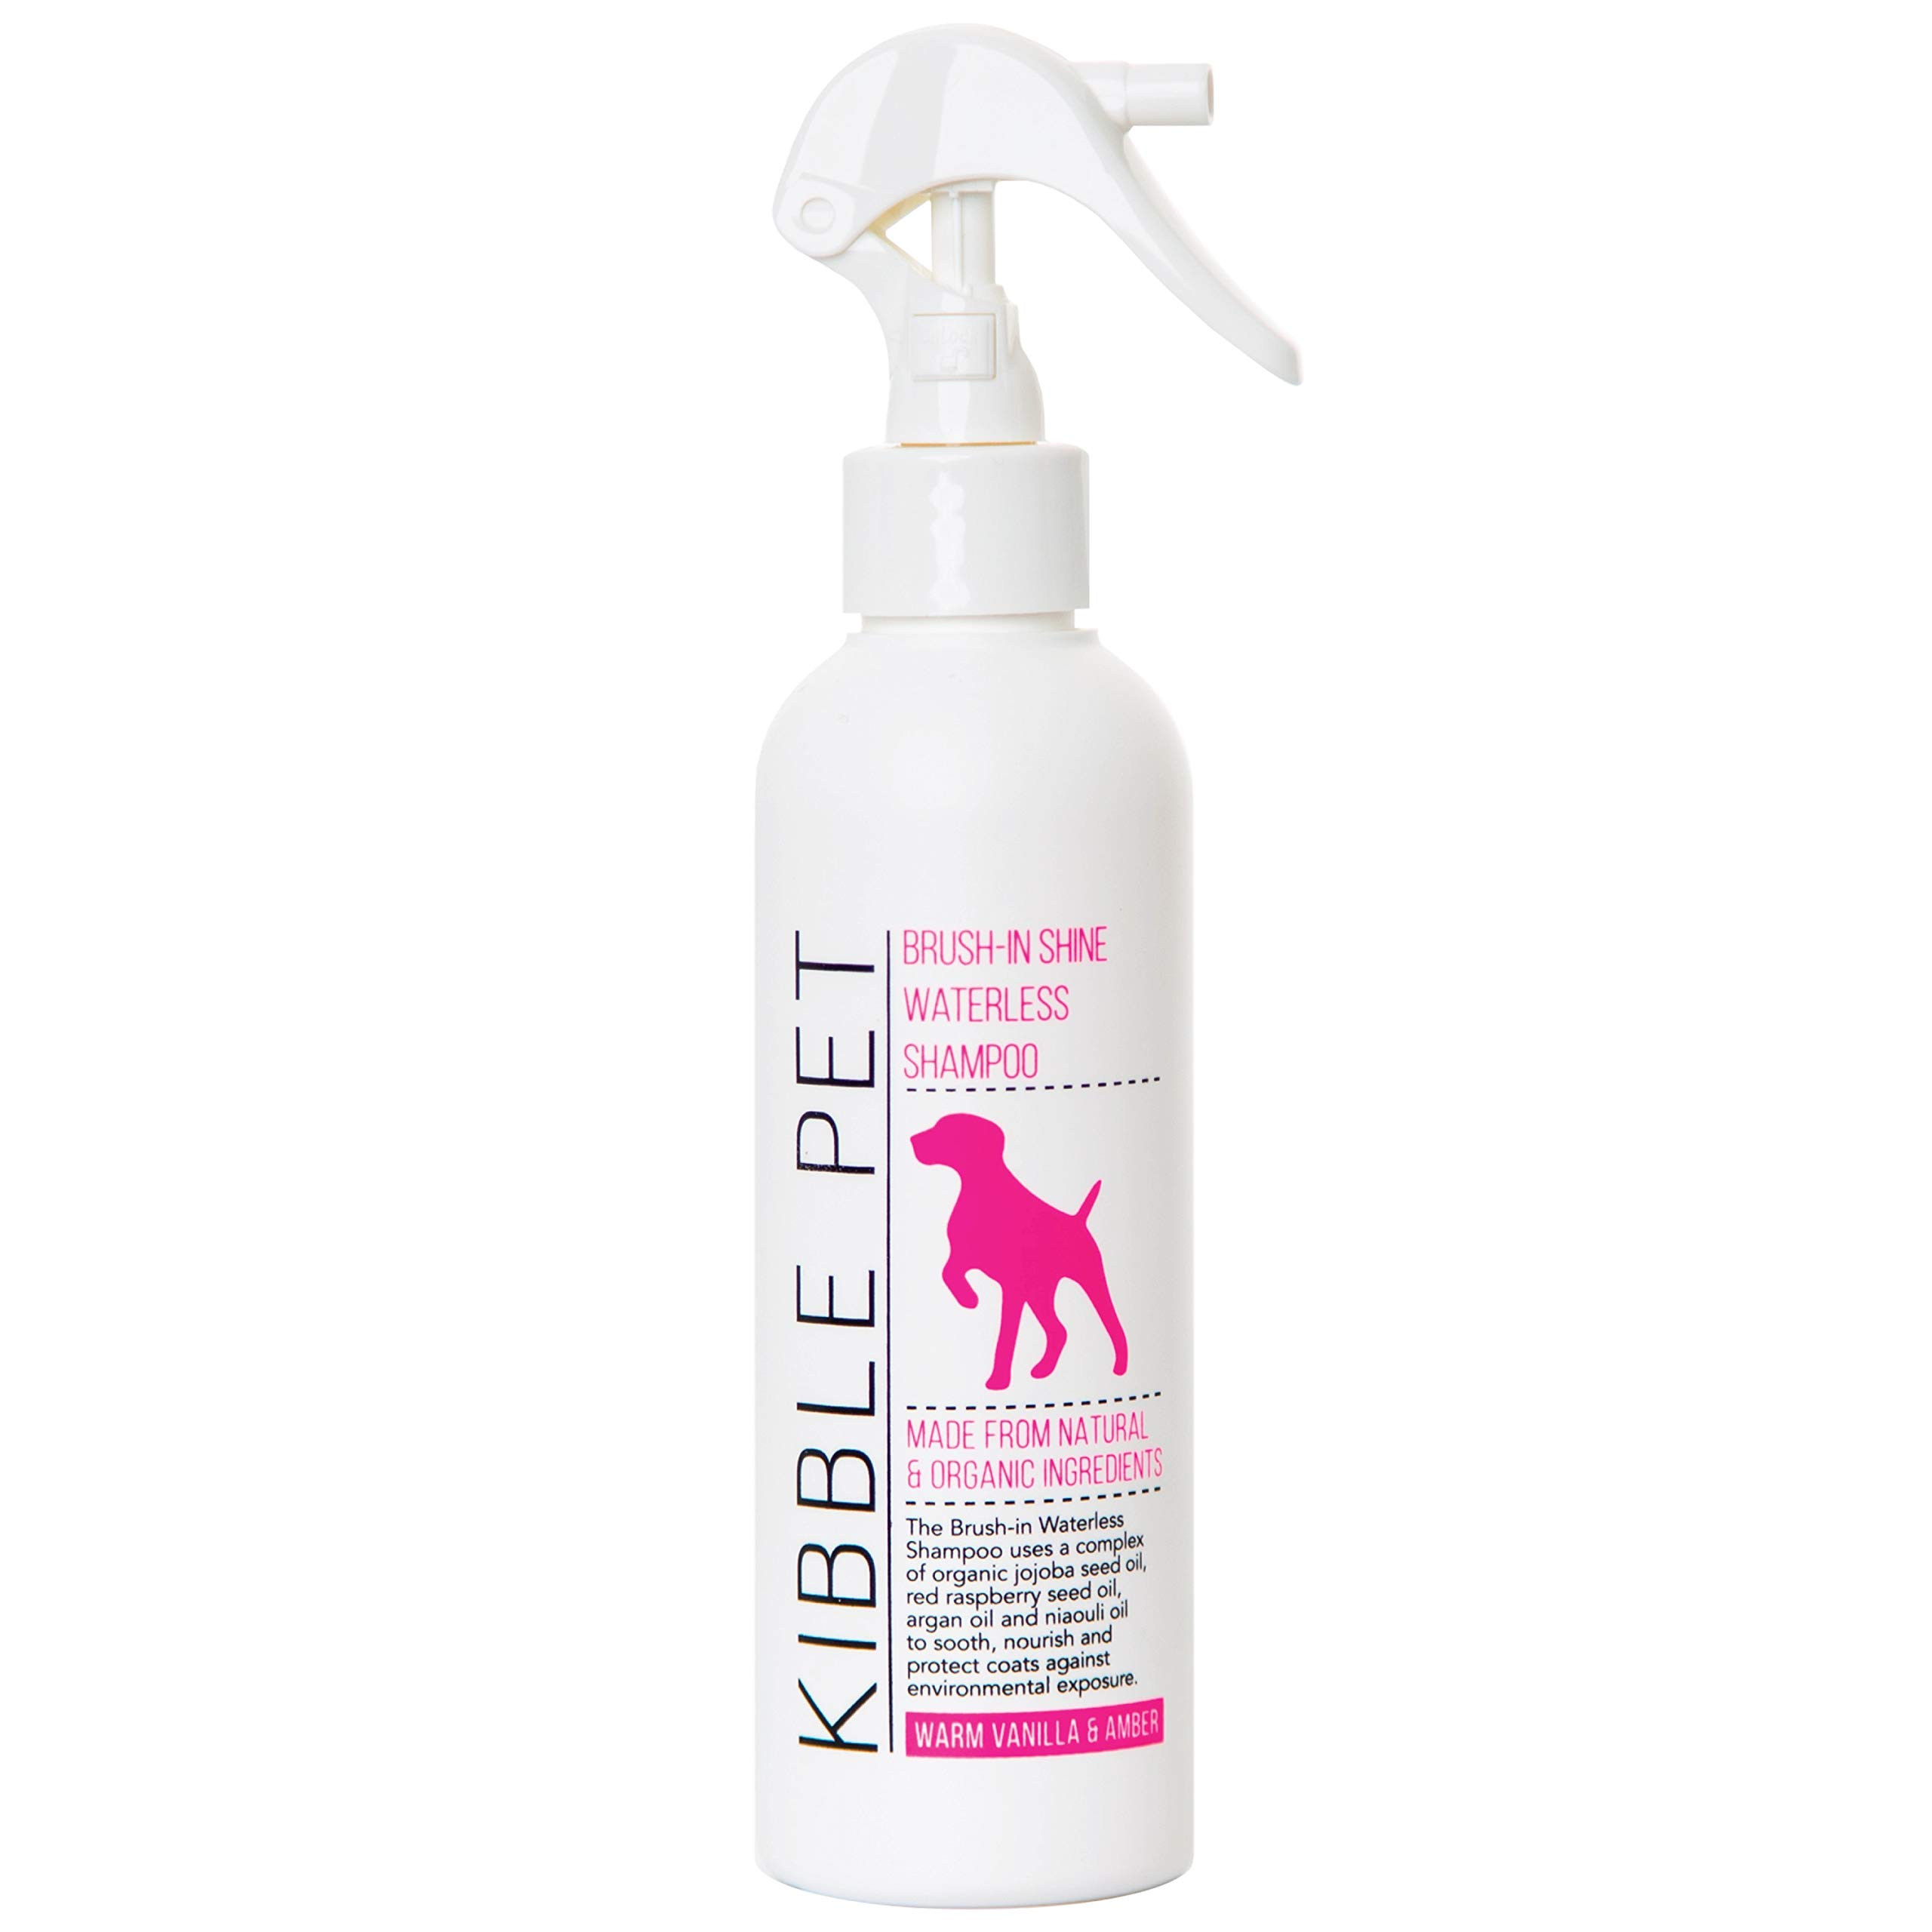 Kibble Pet Salon Quality Brush-in Shine Waterless Dog Shampoo Hypoallergenic | Made with Natural and Organic Ingredients | Made in The USA | 7.1oz